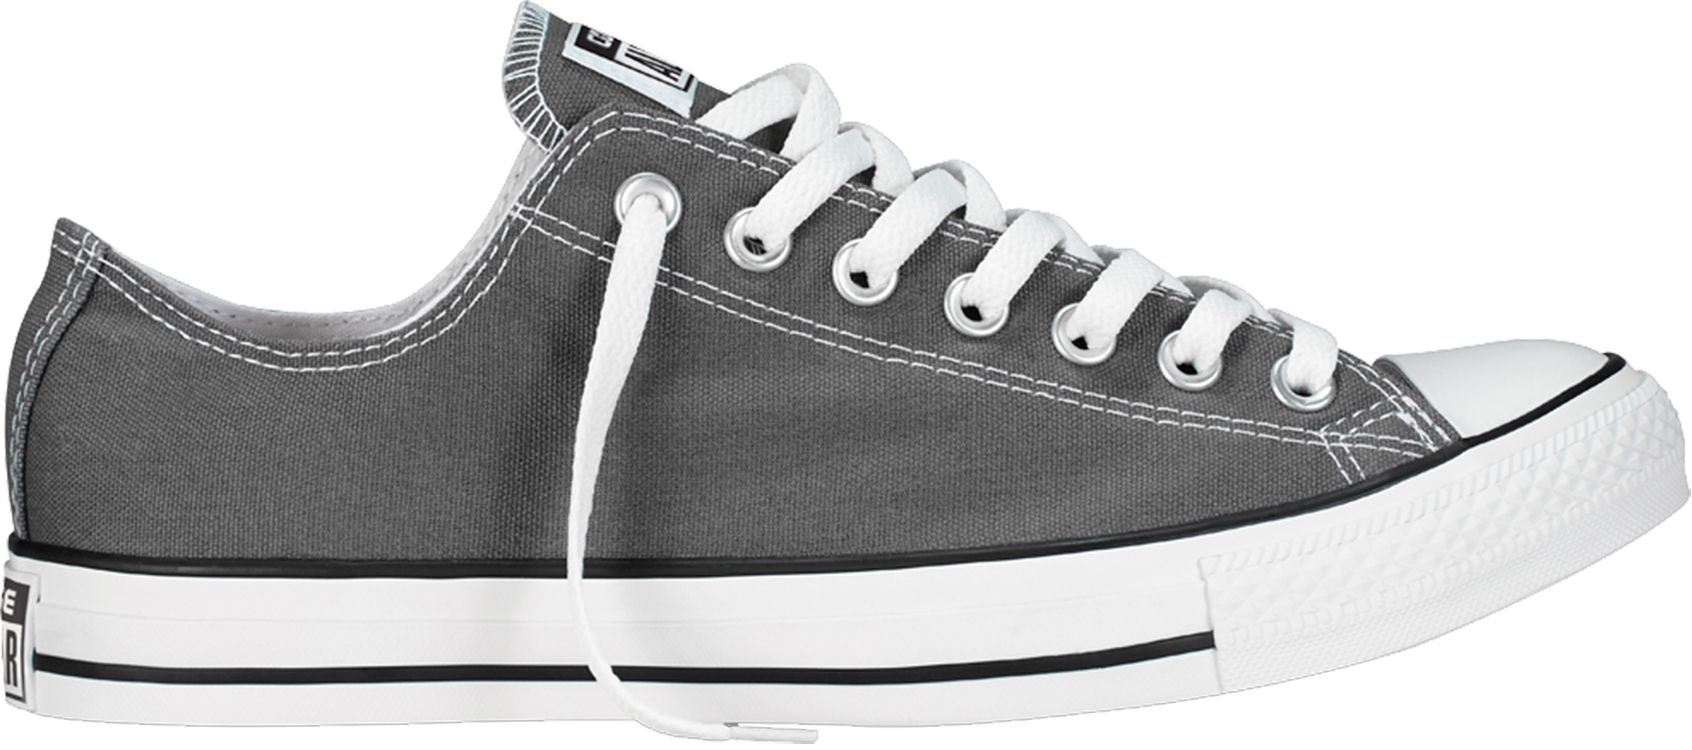 product image converse chuck taylor all star classic lowtop casual shoes